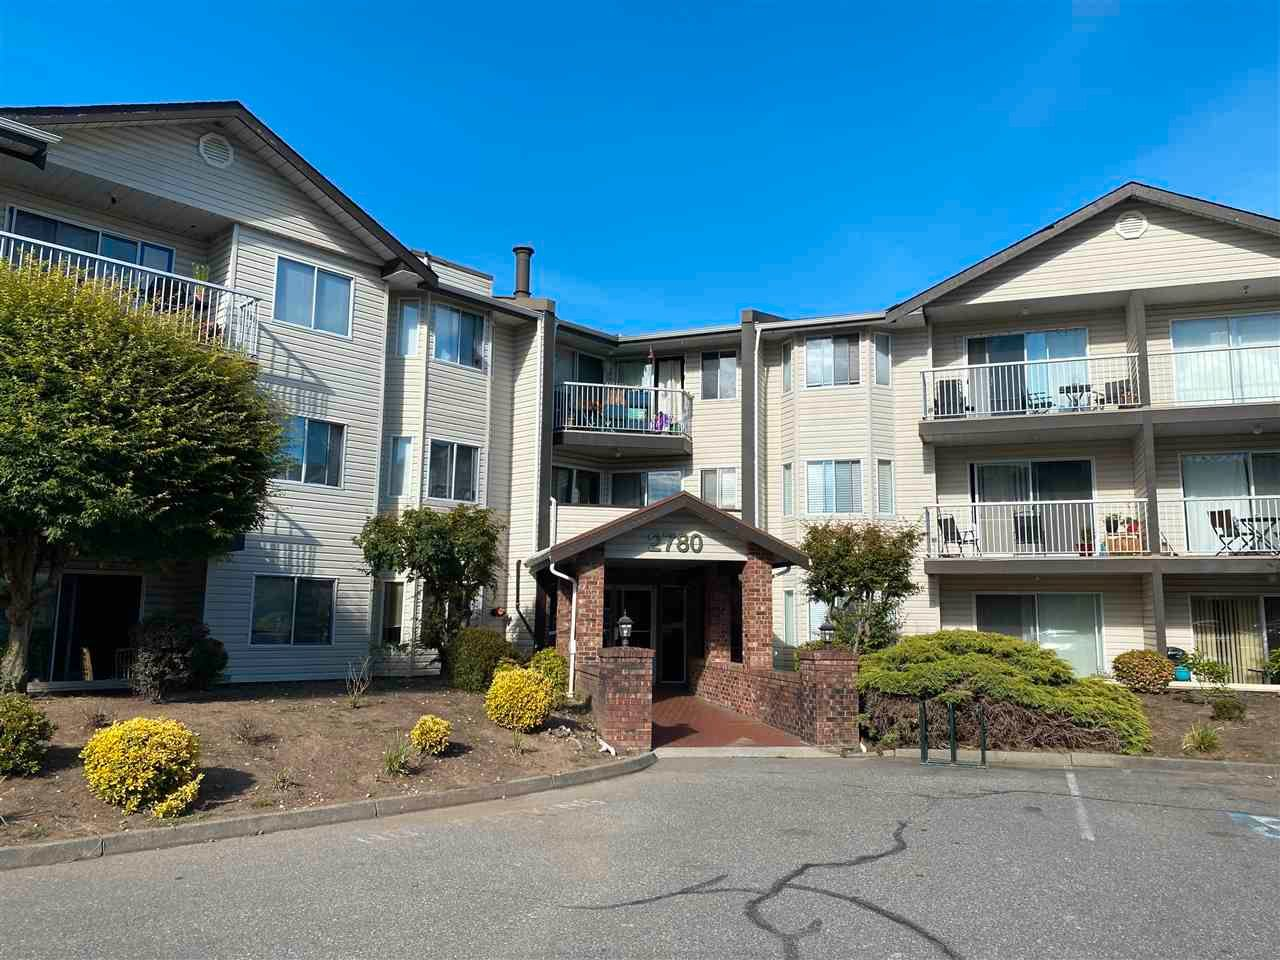 """Main Photo: 311 2780 WARE Street in Abbotsford: Central Abbotsford Condo for sale in """"CHELSEA HOUSE"""" : MLS®# R2592115"""